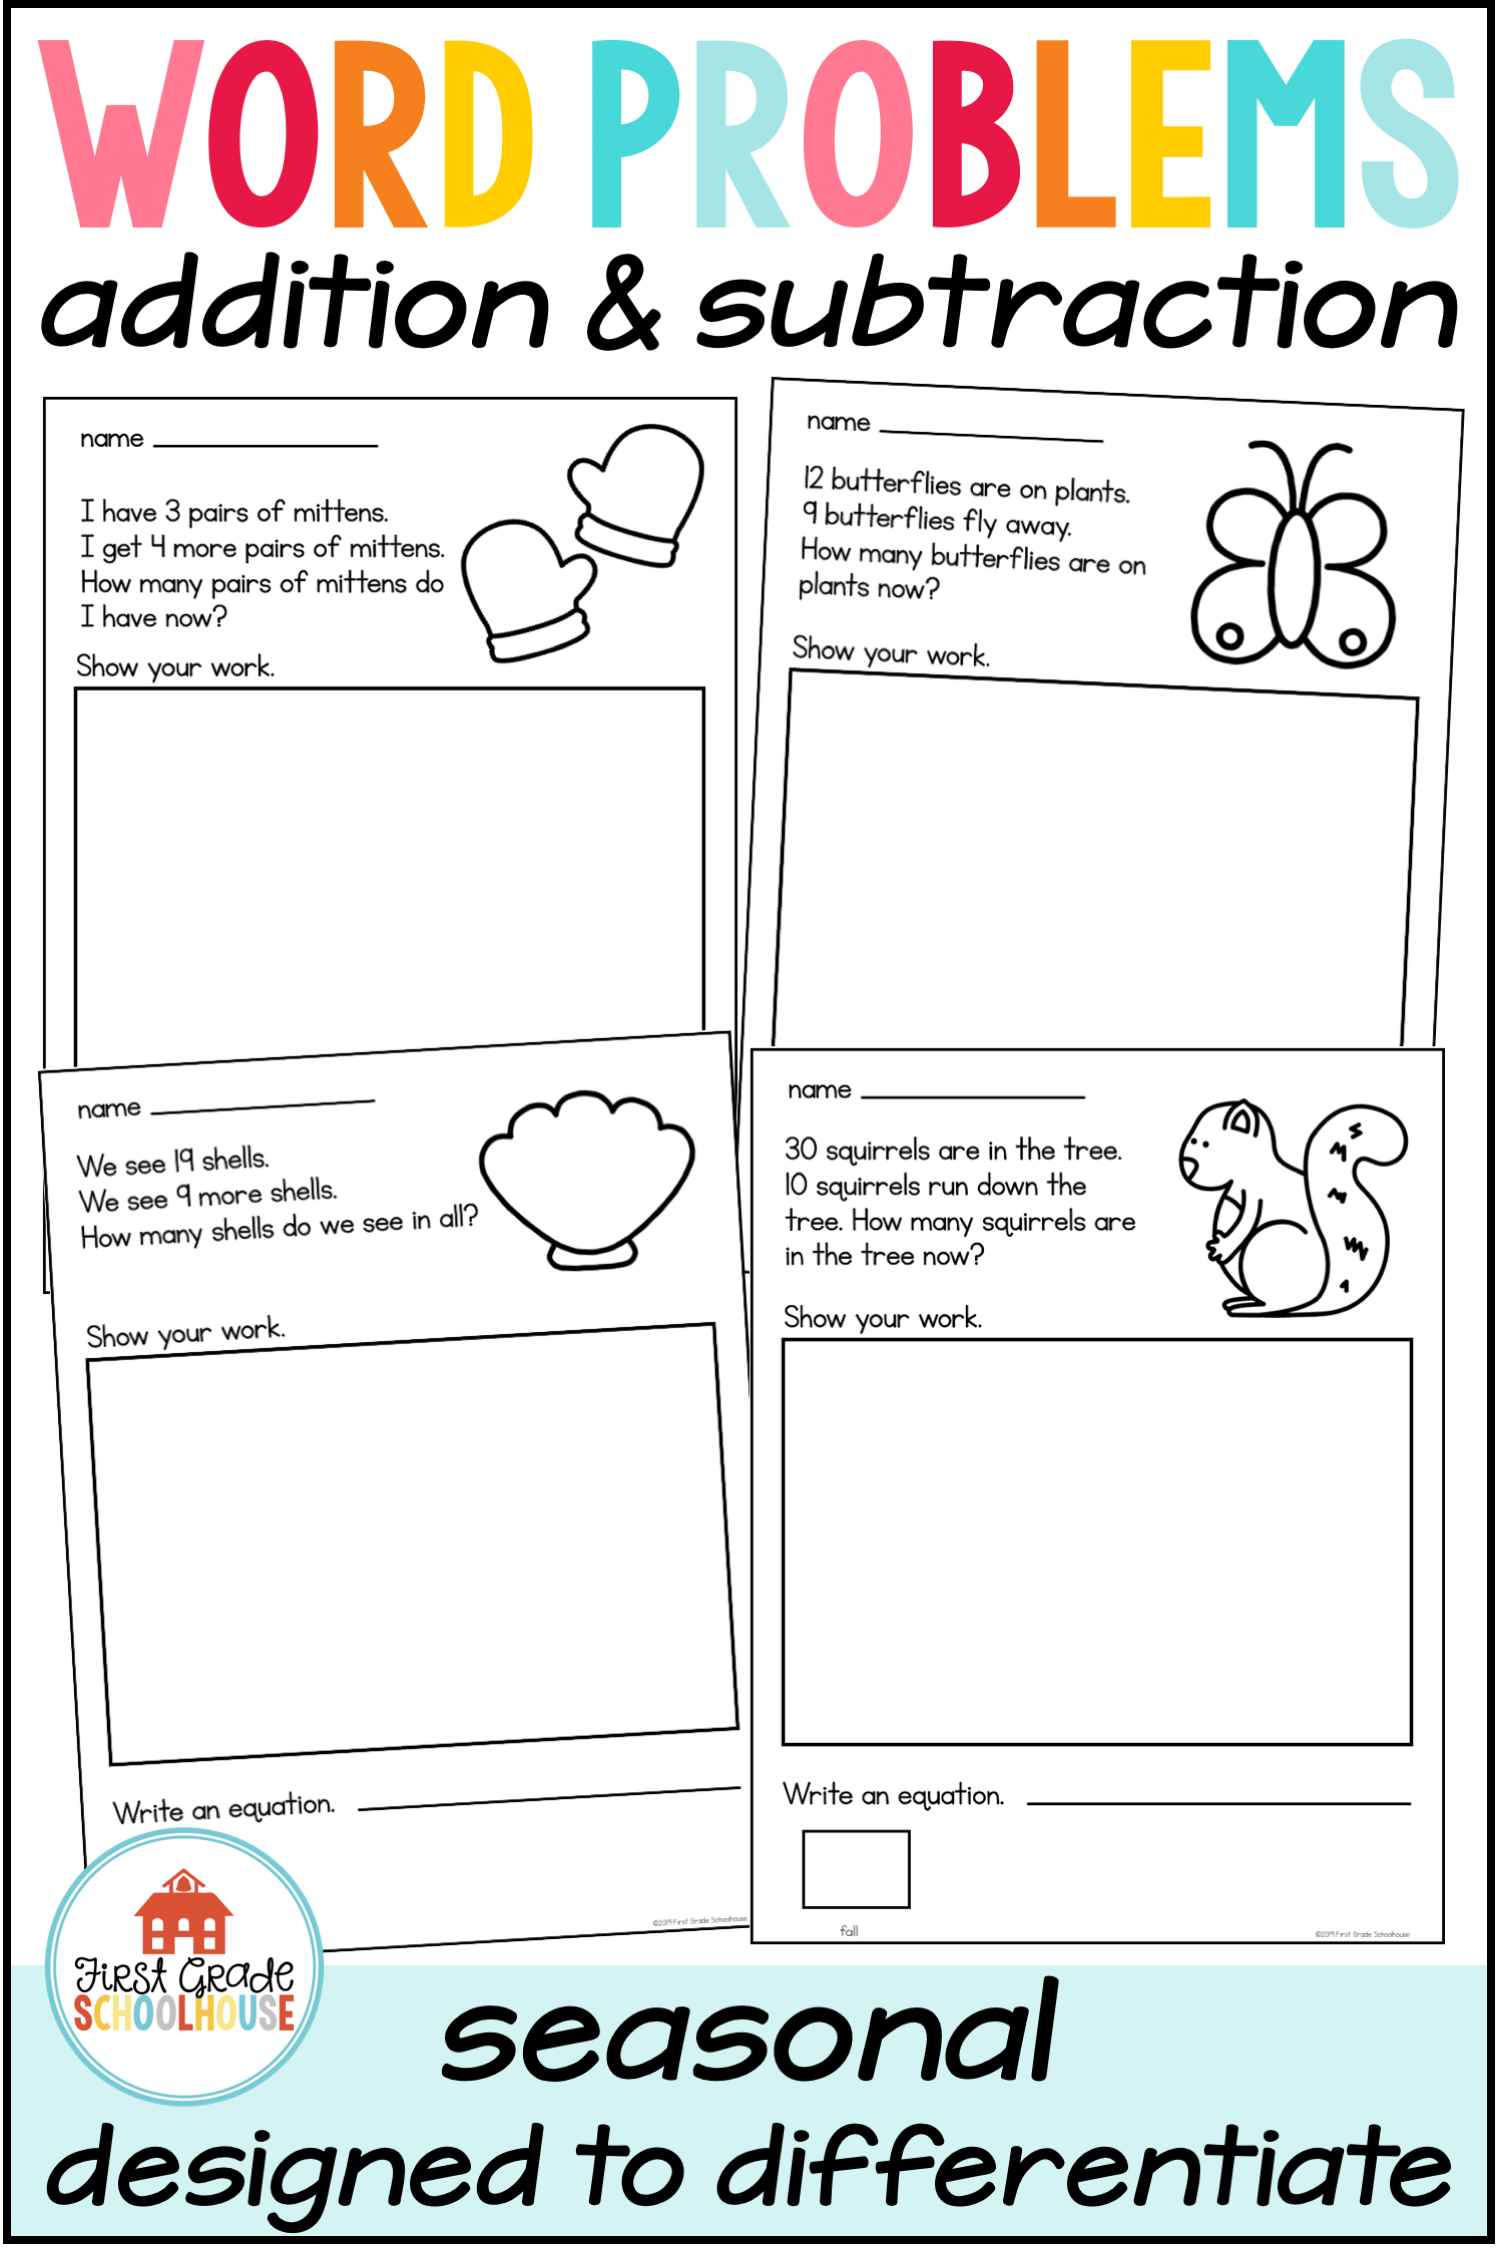 small resolution of Word Problems Addition and Subtraction   Seasons   Preschool math worksheets